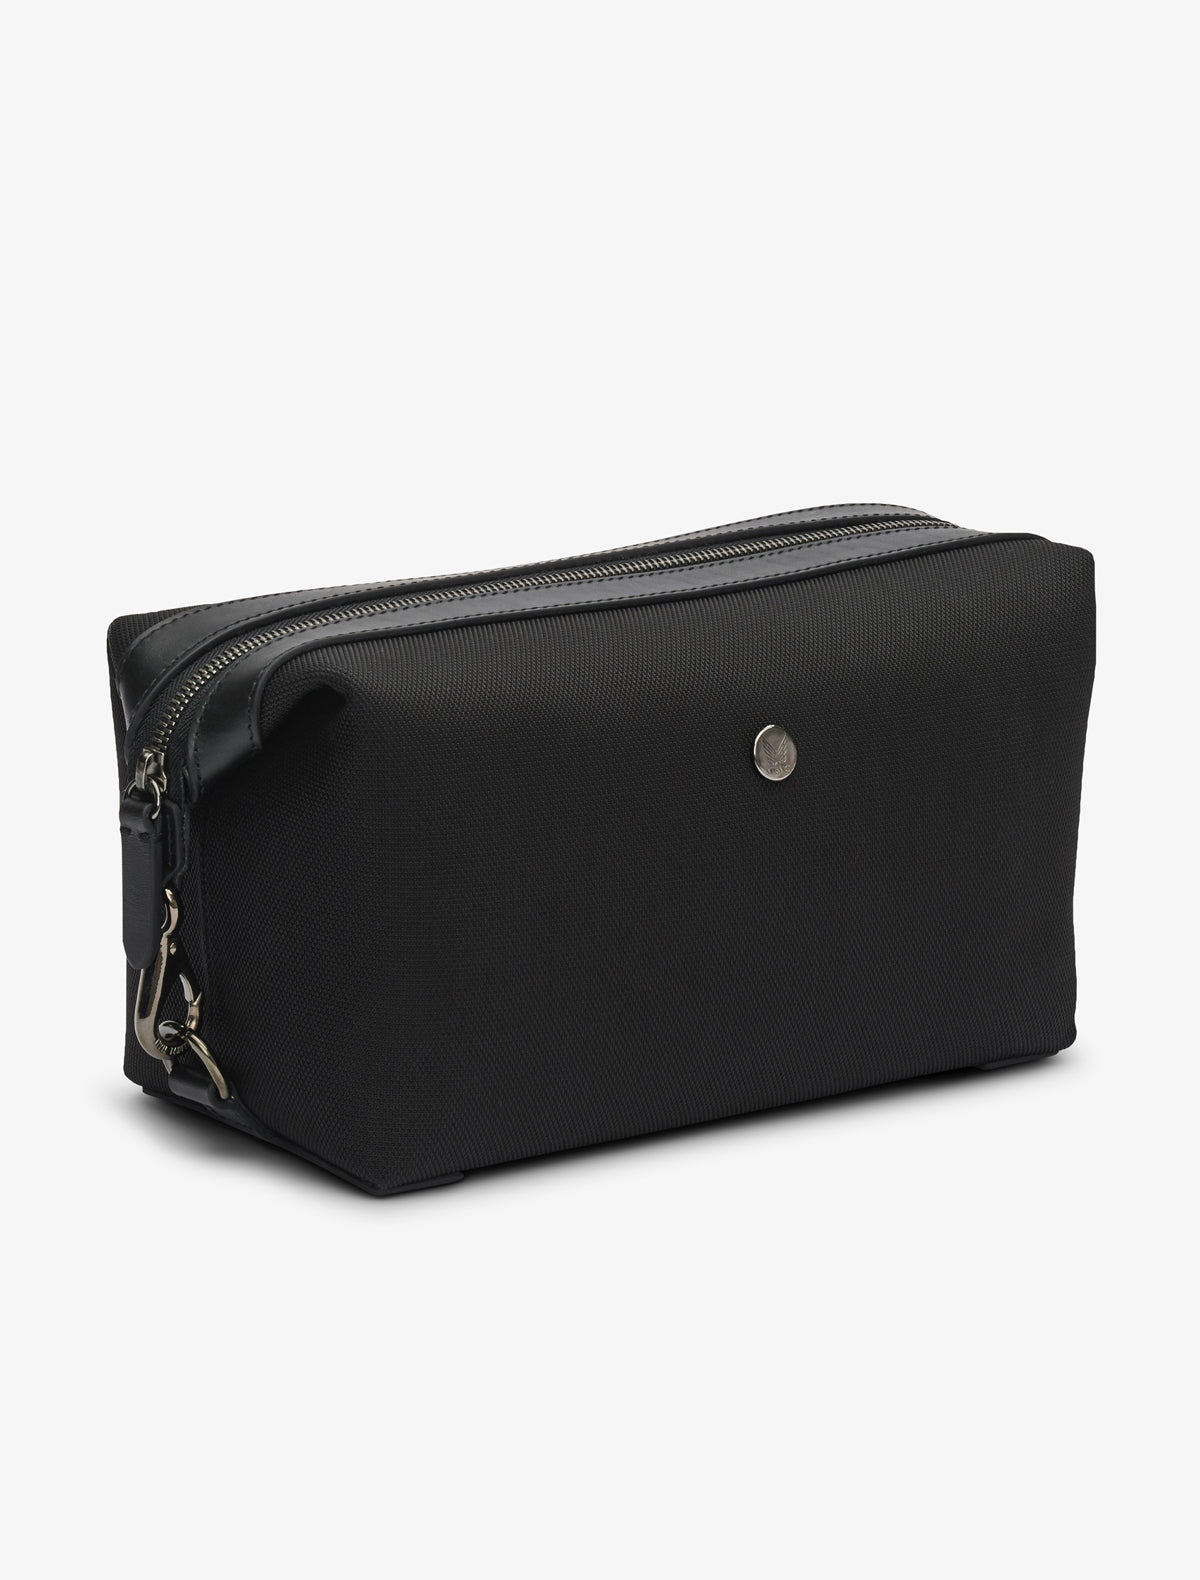 M/S Washbag – Black/Black description image